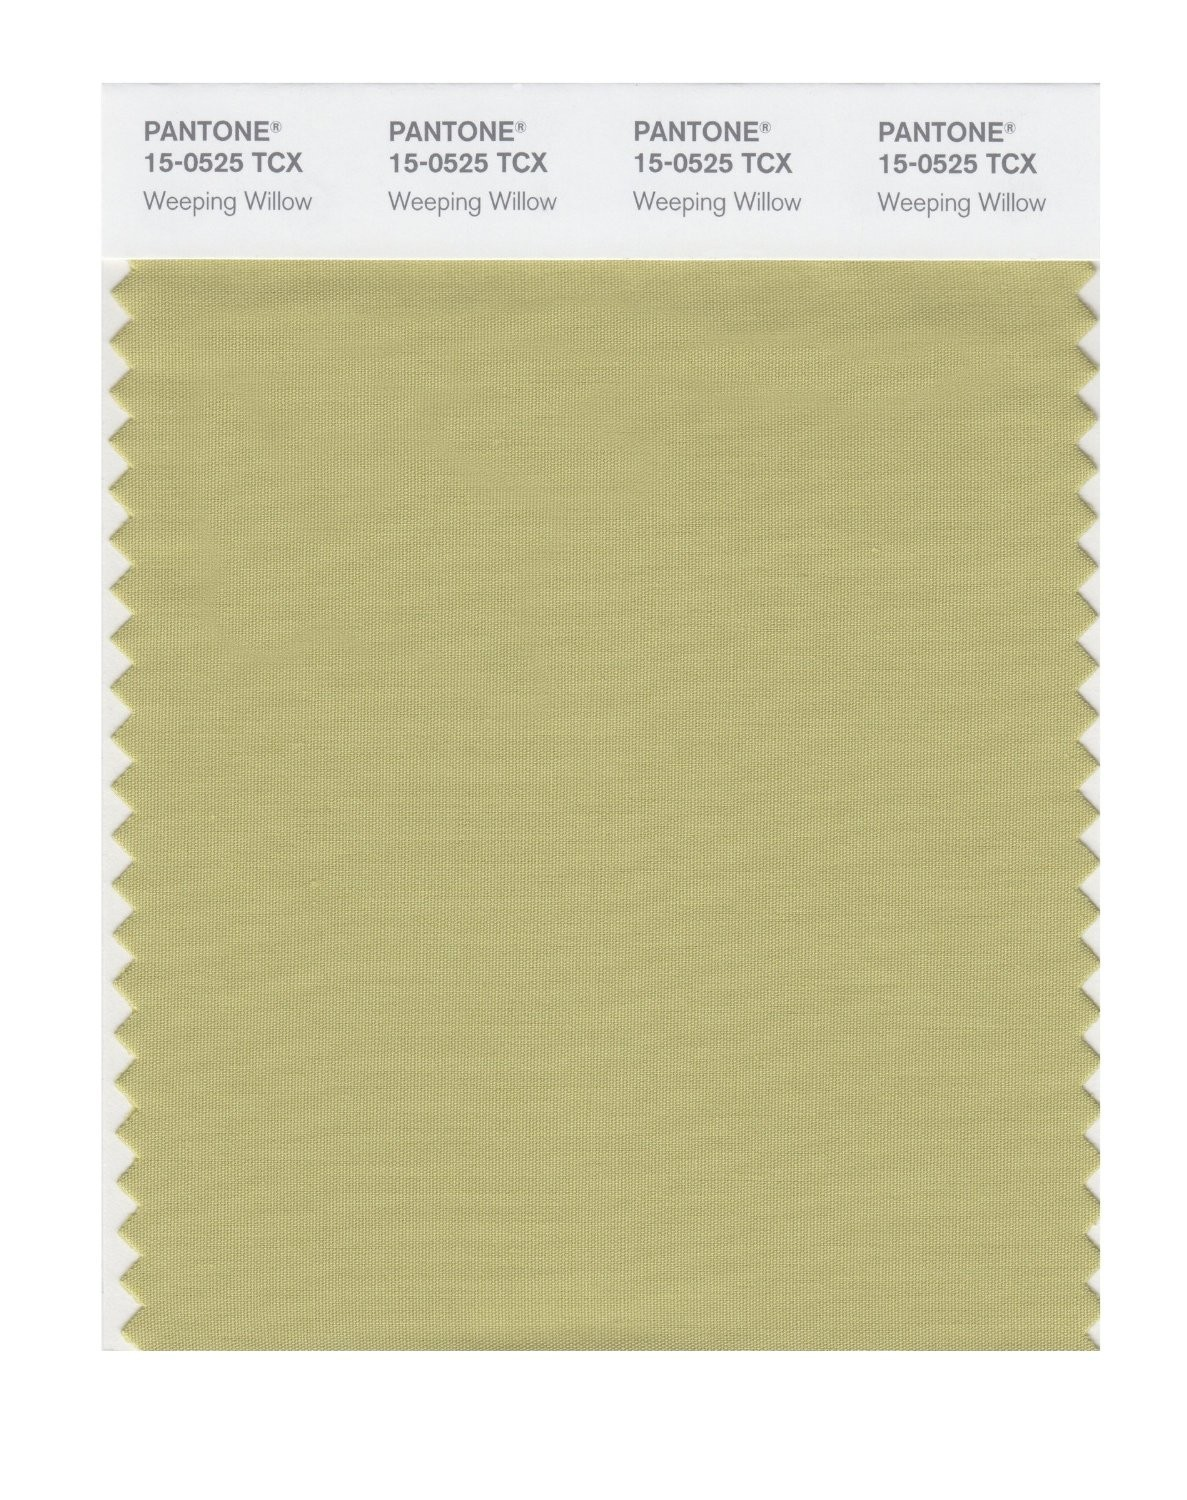 Pantone 15-0525 TCX Swatch Card Weeping Willow